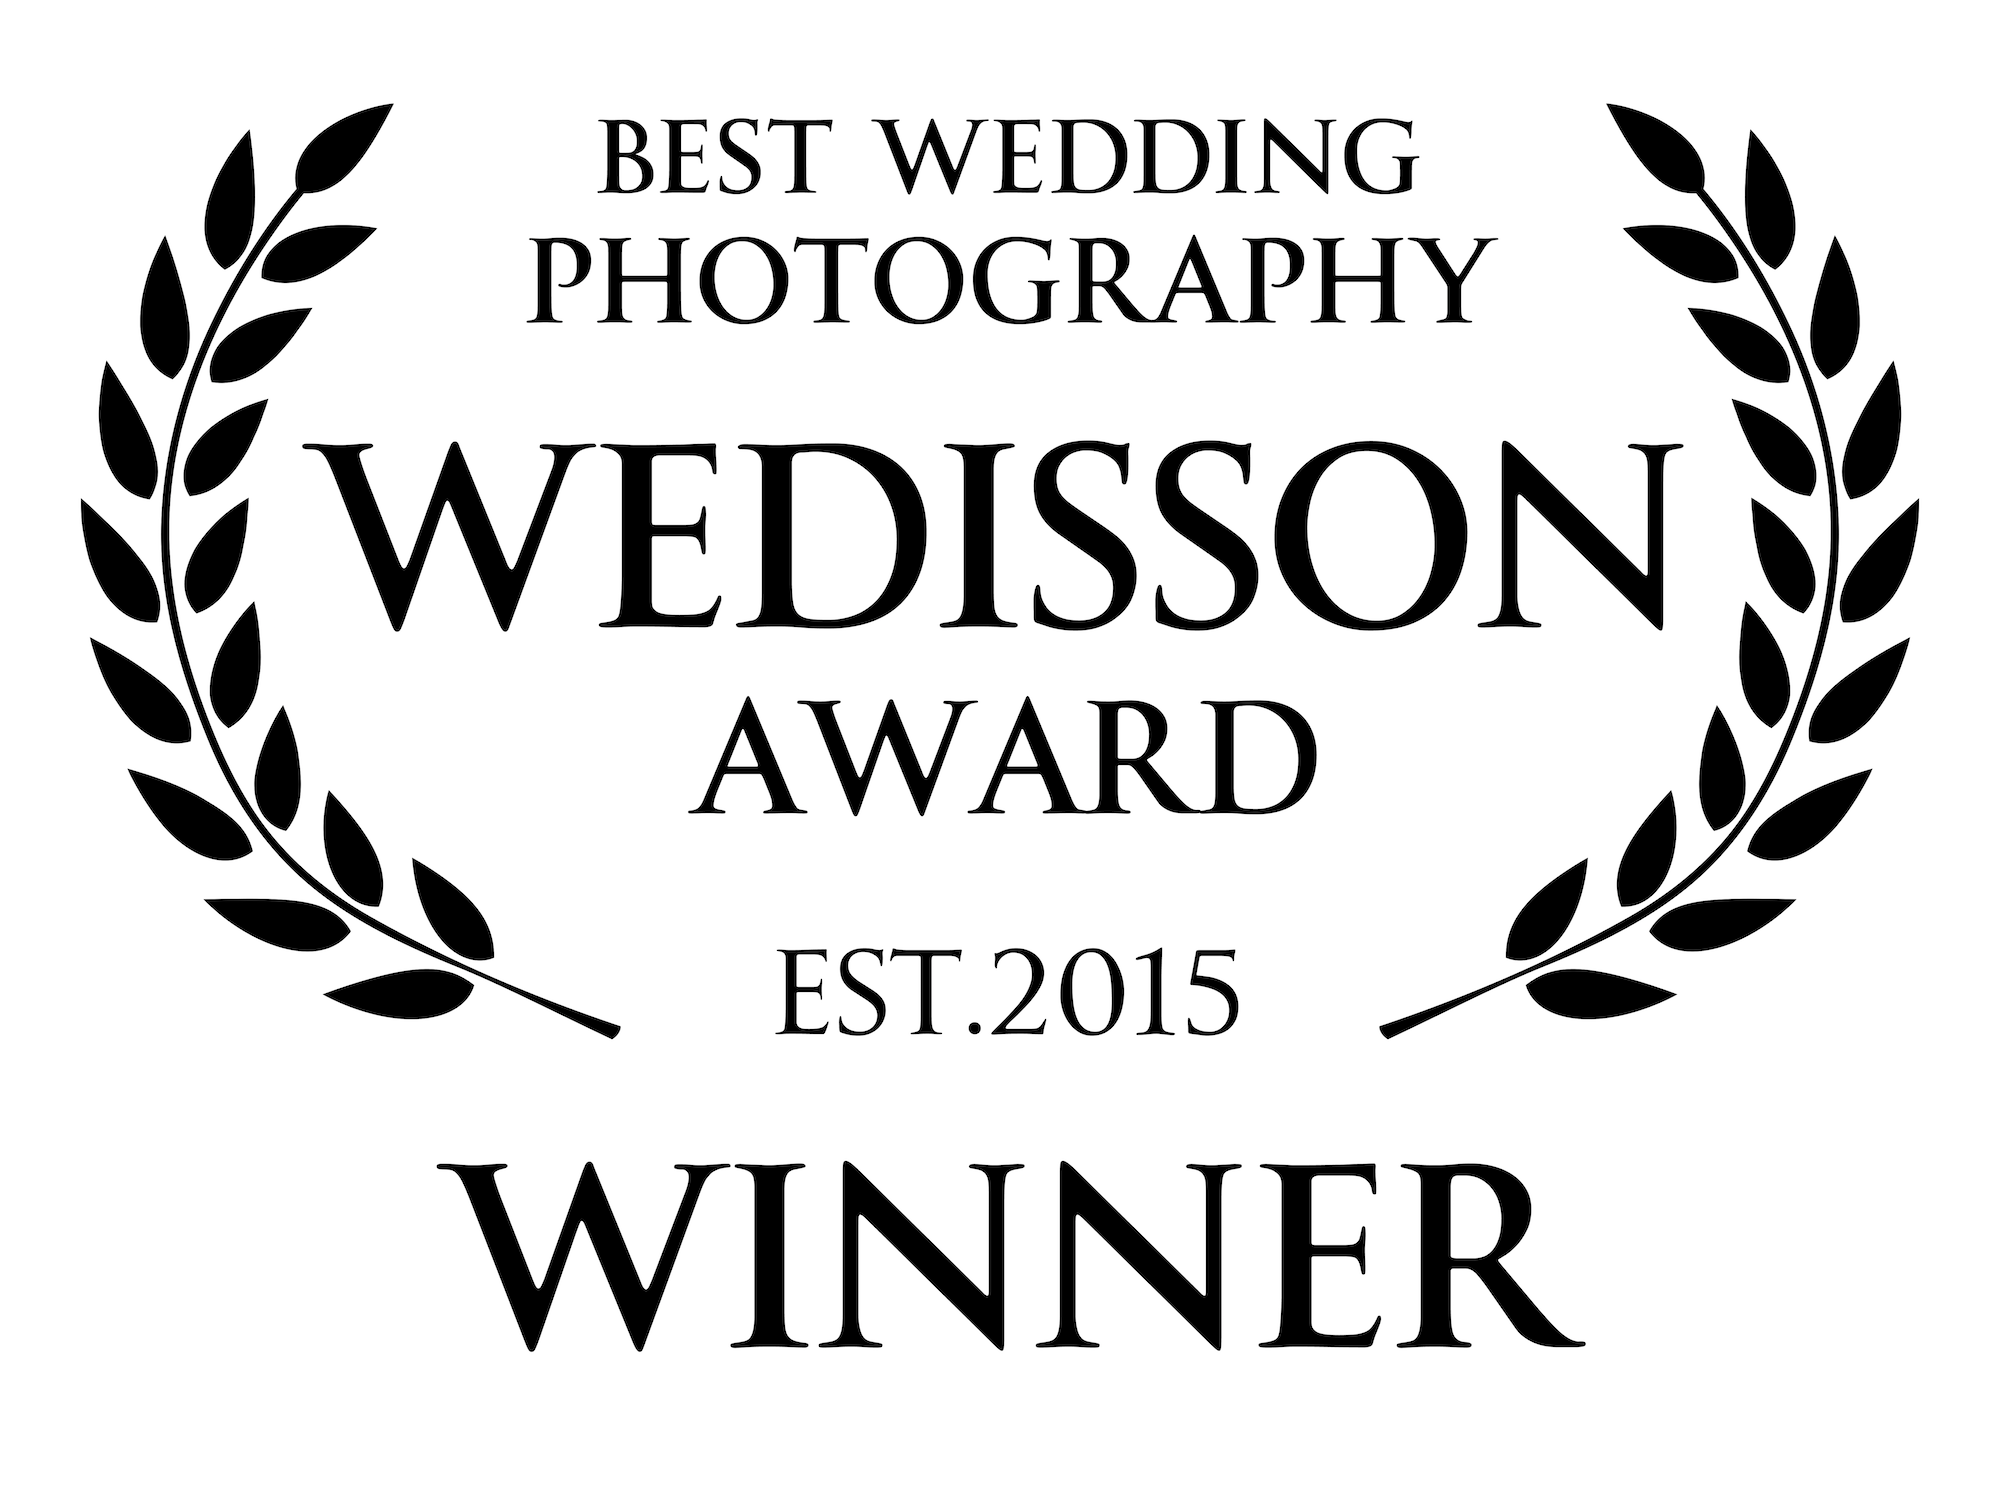 - At the beginning of January 2017 we won a 'Wedisson Best Wedding Photography Award' for our first ever submission for this image of Zoe + Michael taken at Madeley Court Hotel, Telford.Wedisson recognise the best wedding photography internationally, and it is a huge honour to be amongst so many talented photographers from around the world.